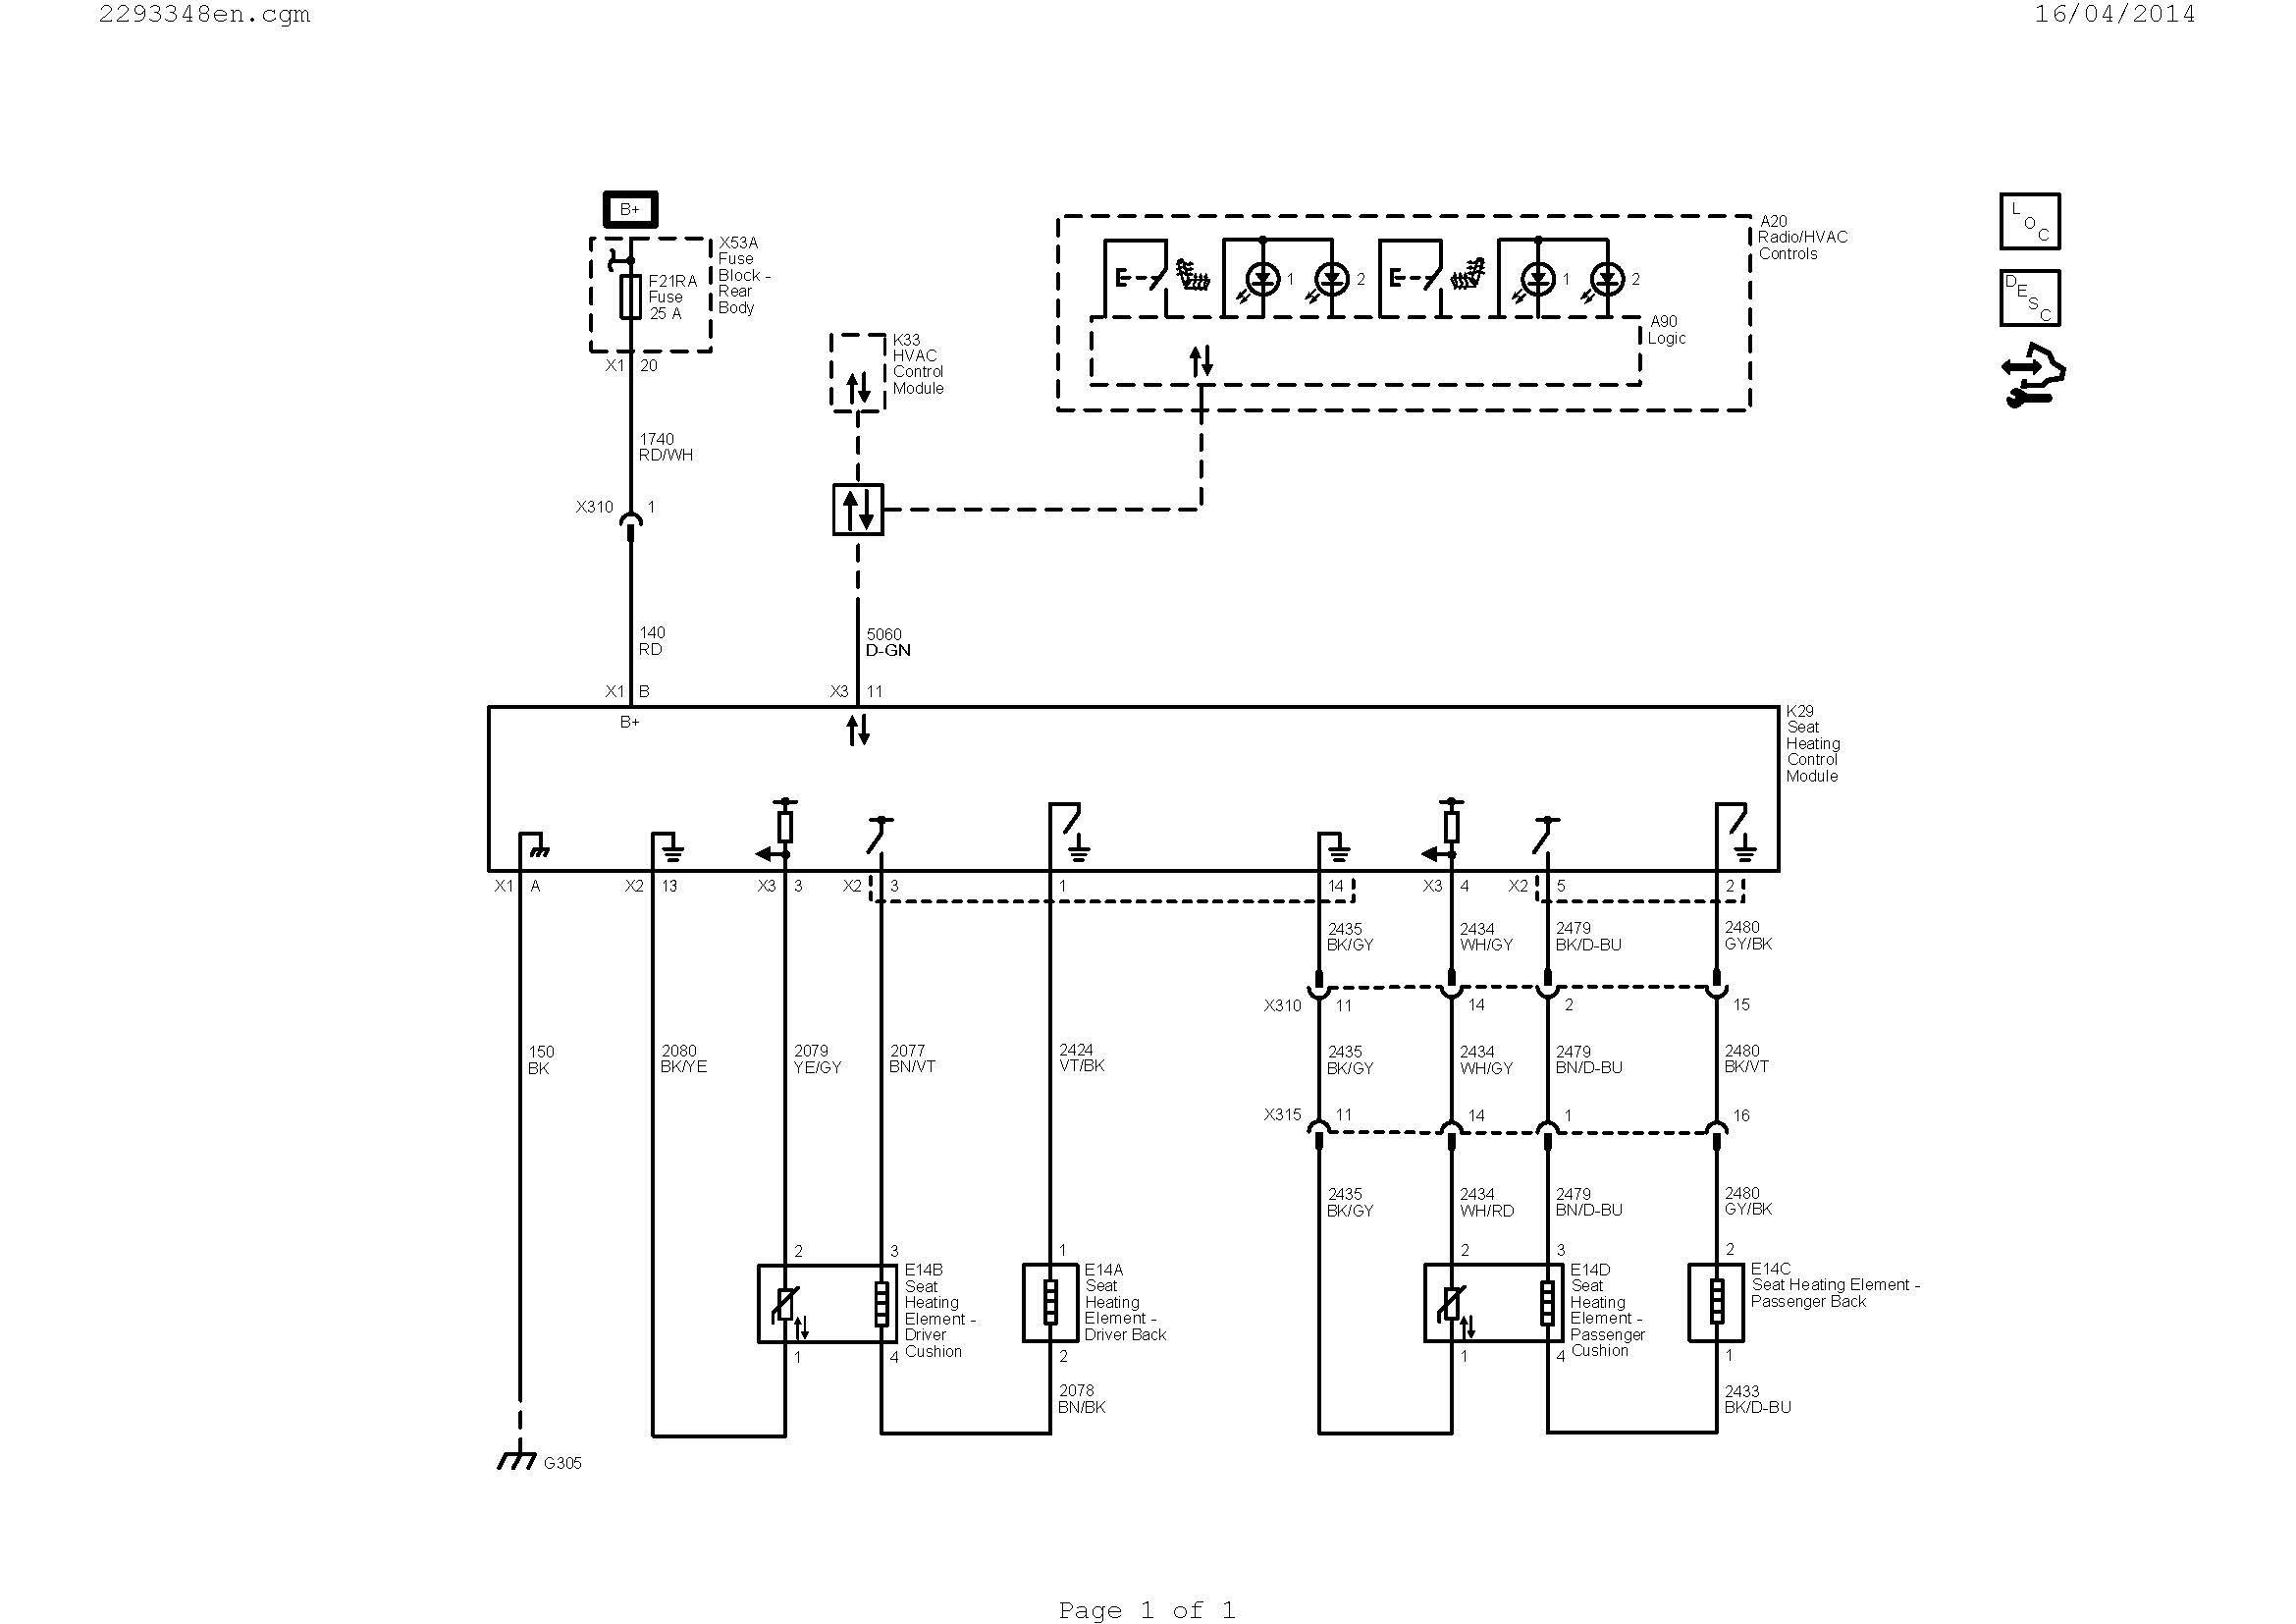 Wiring Diagram or Schematic New Wiring Diagram Guitar Fresh Hvac Diagram Best Hvac Diagram 0d